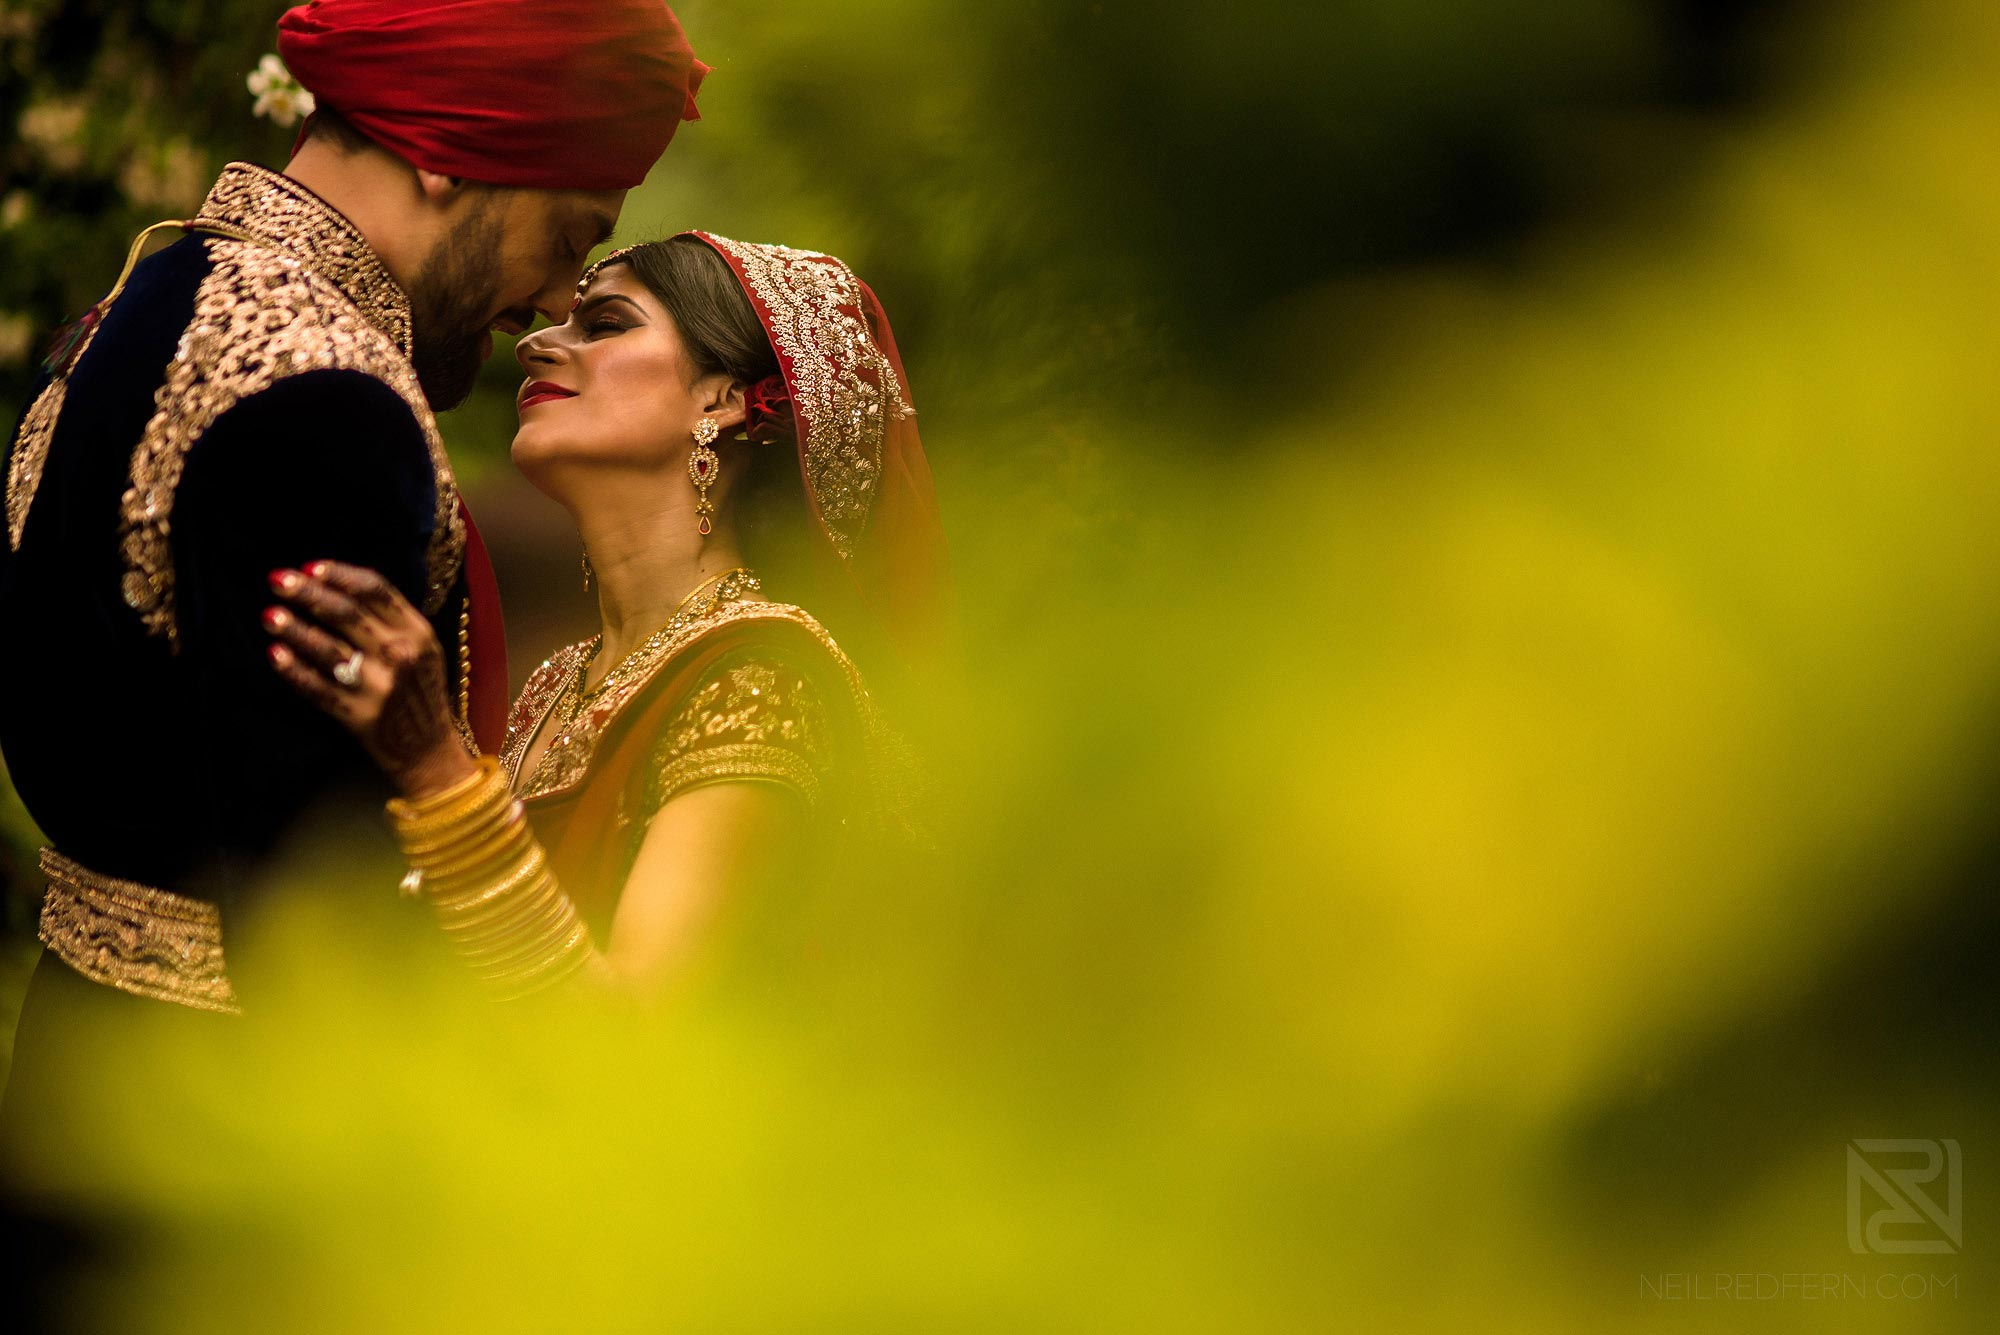 romantic photograph of bride and groom together